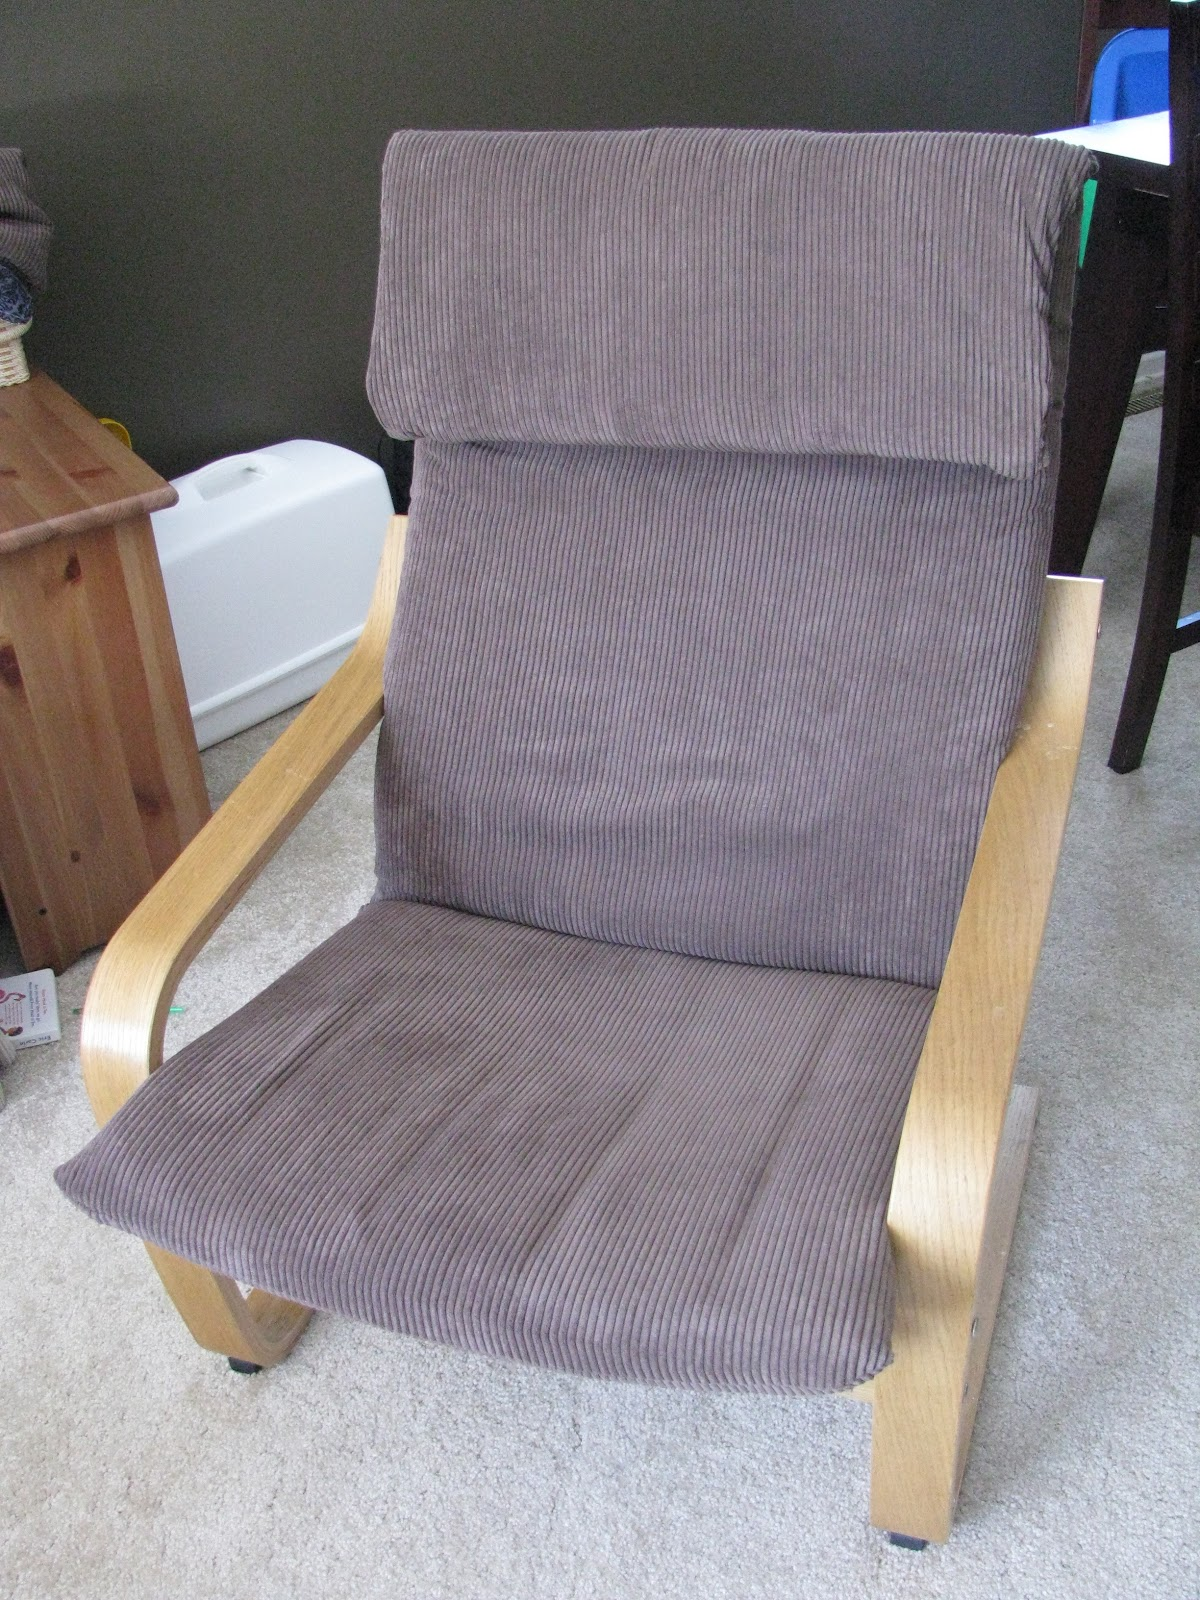 Taylor Made Poang Chair Slip Cover Tutorial